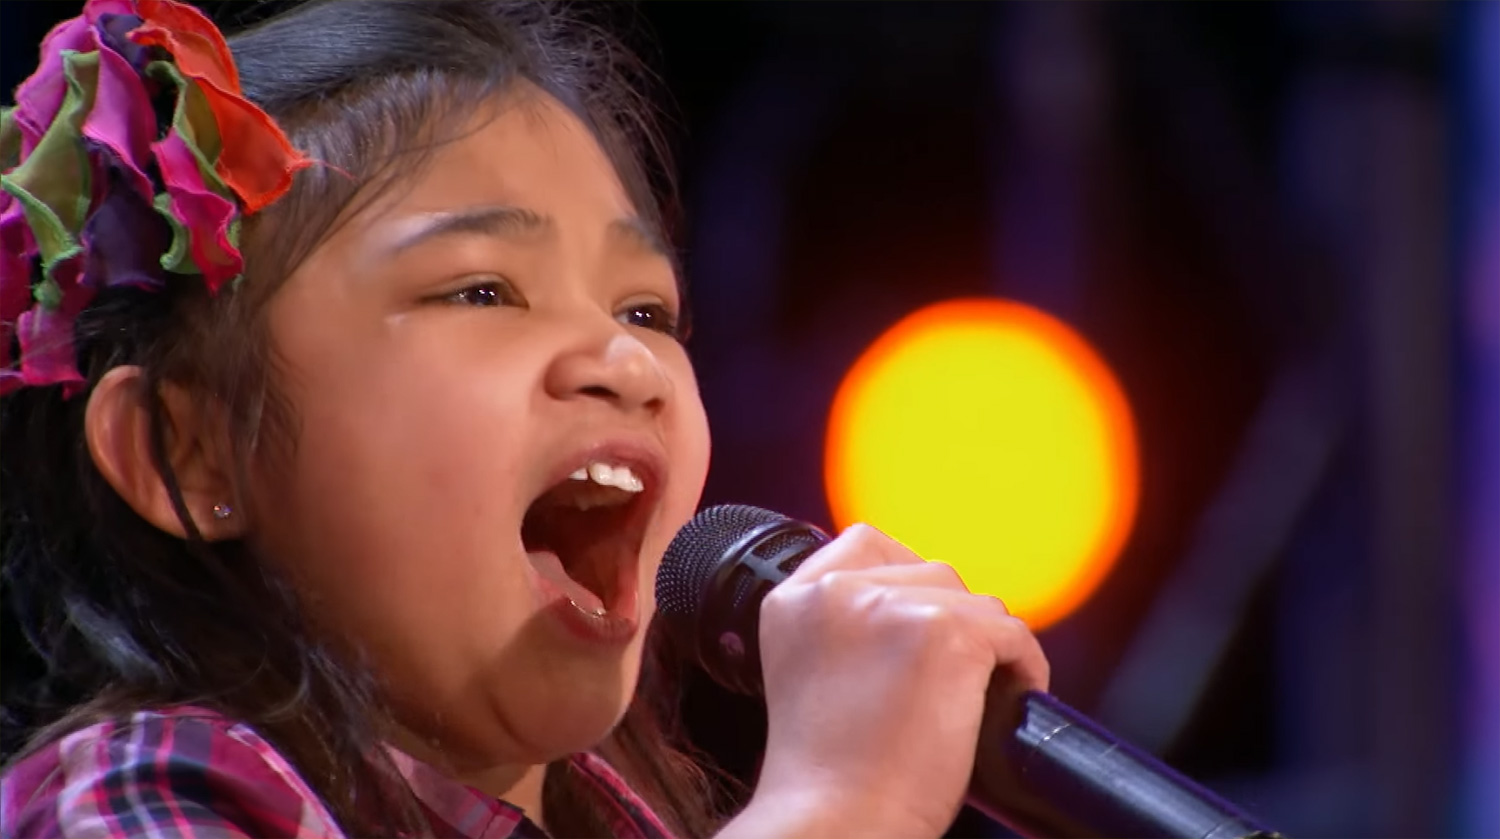 Americas got talent 2017 9 year old opera singer - Nine Year Old Angelica Hale S Voice On America S Got Talent Will Amaze You Video America S Got Talent Angelica Hale Just Jared